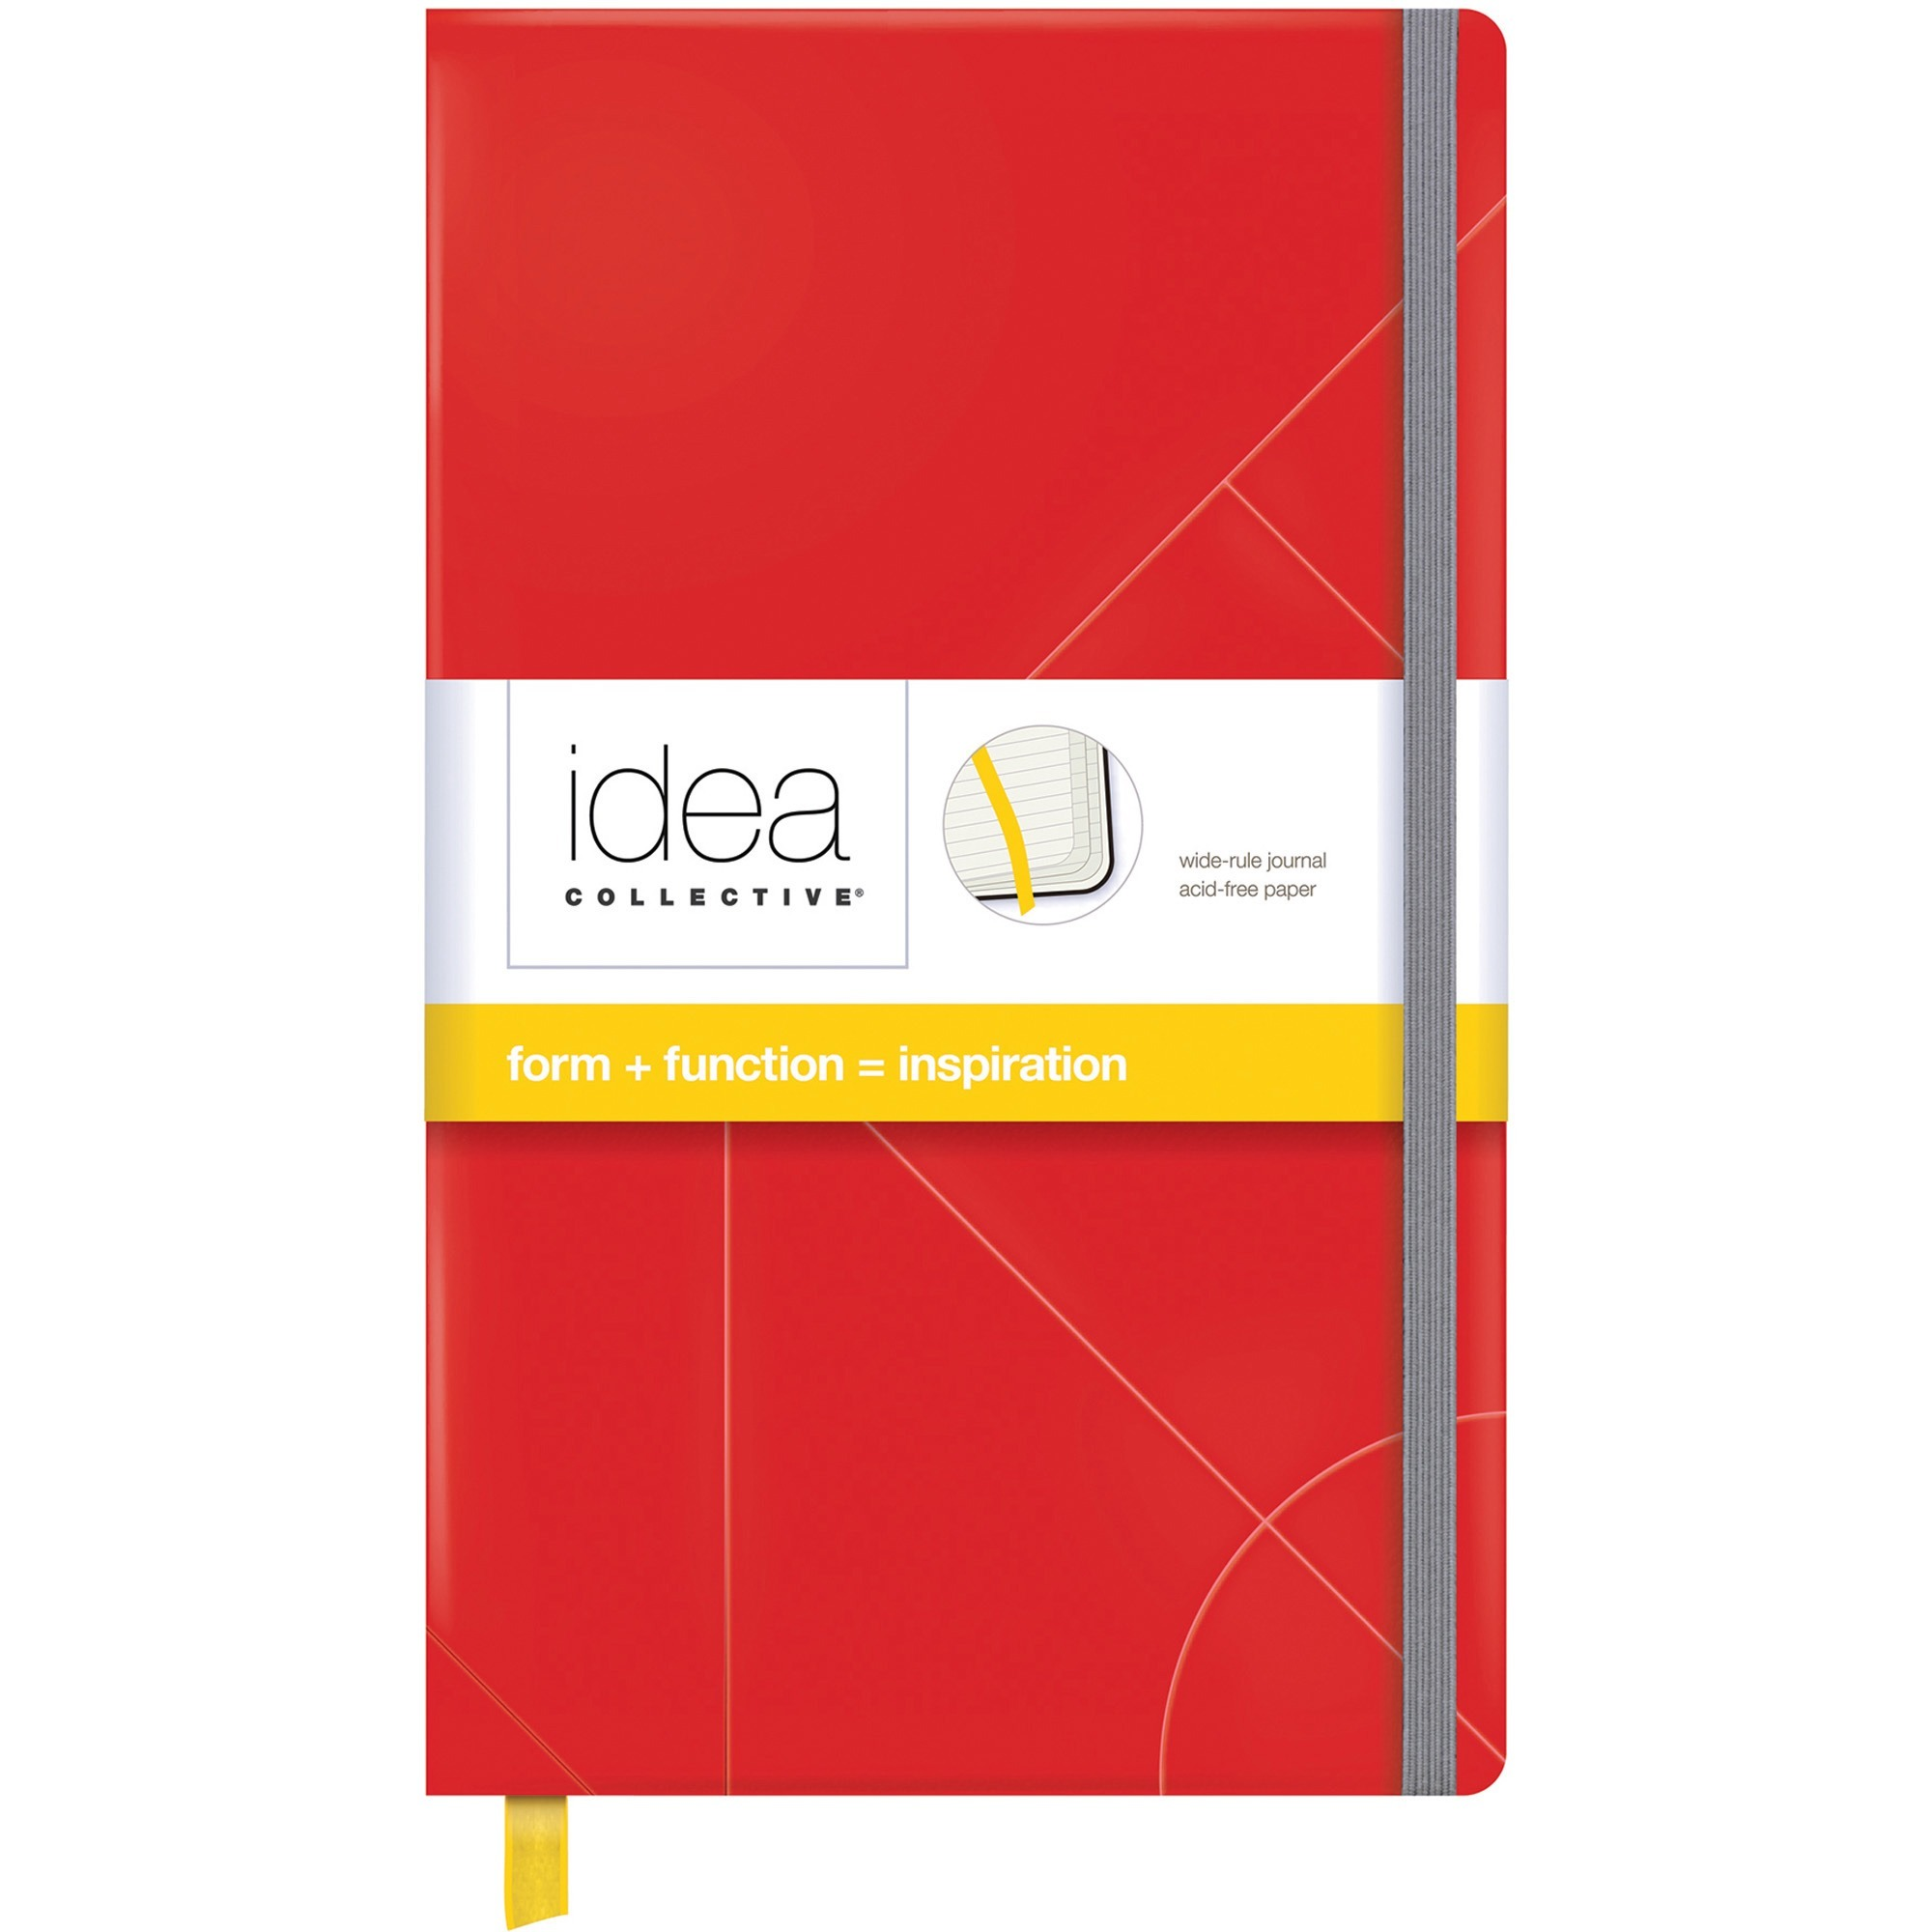 TOPS, TOP56873, Idea Collective Hard Cover Journal, 1 Each